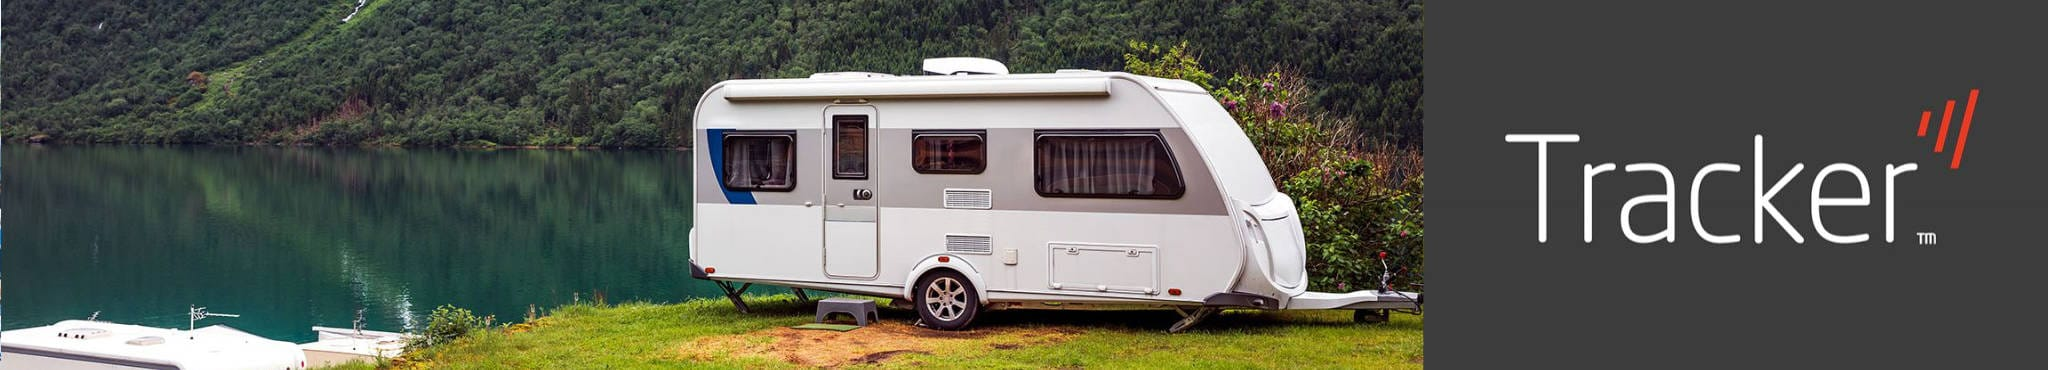 Caravan and motorhome thefts up in 2020 and set to continue in 2021